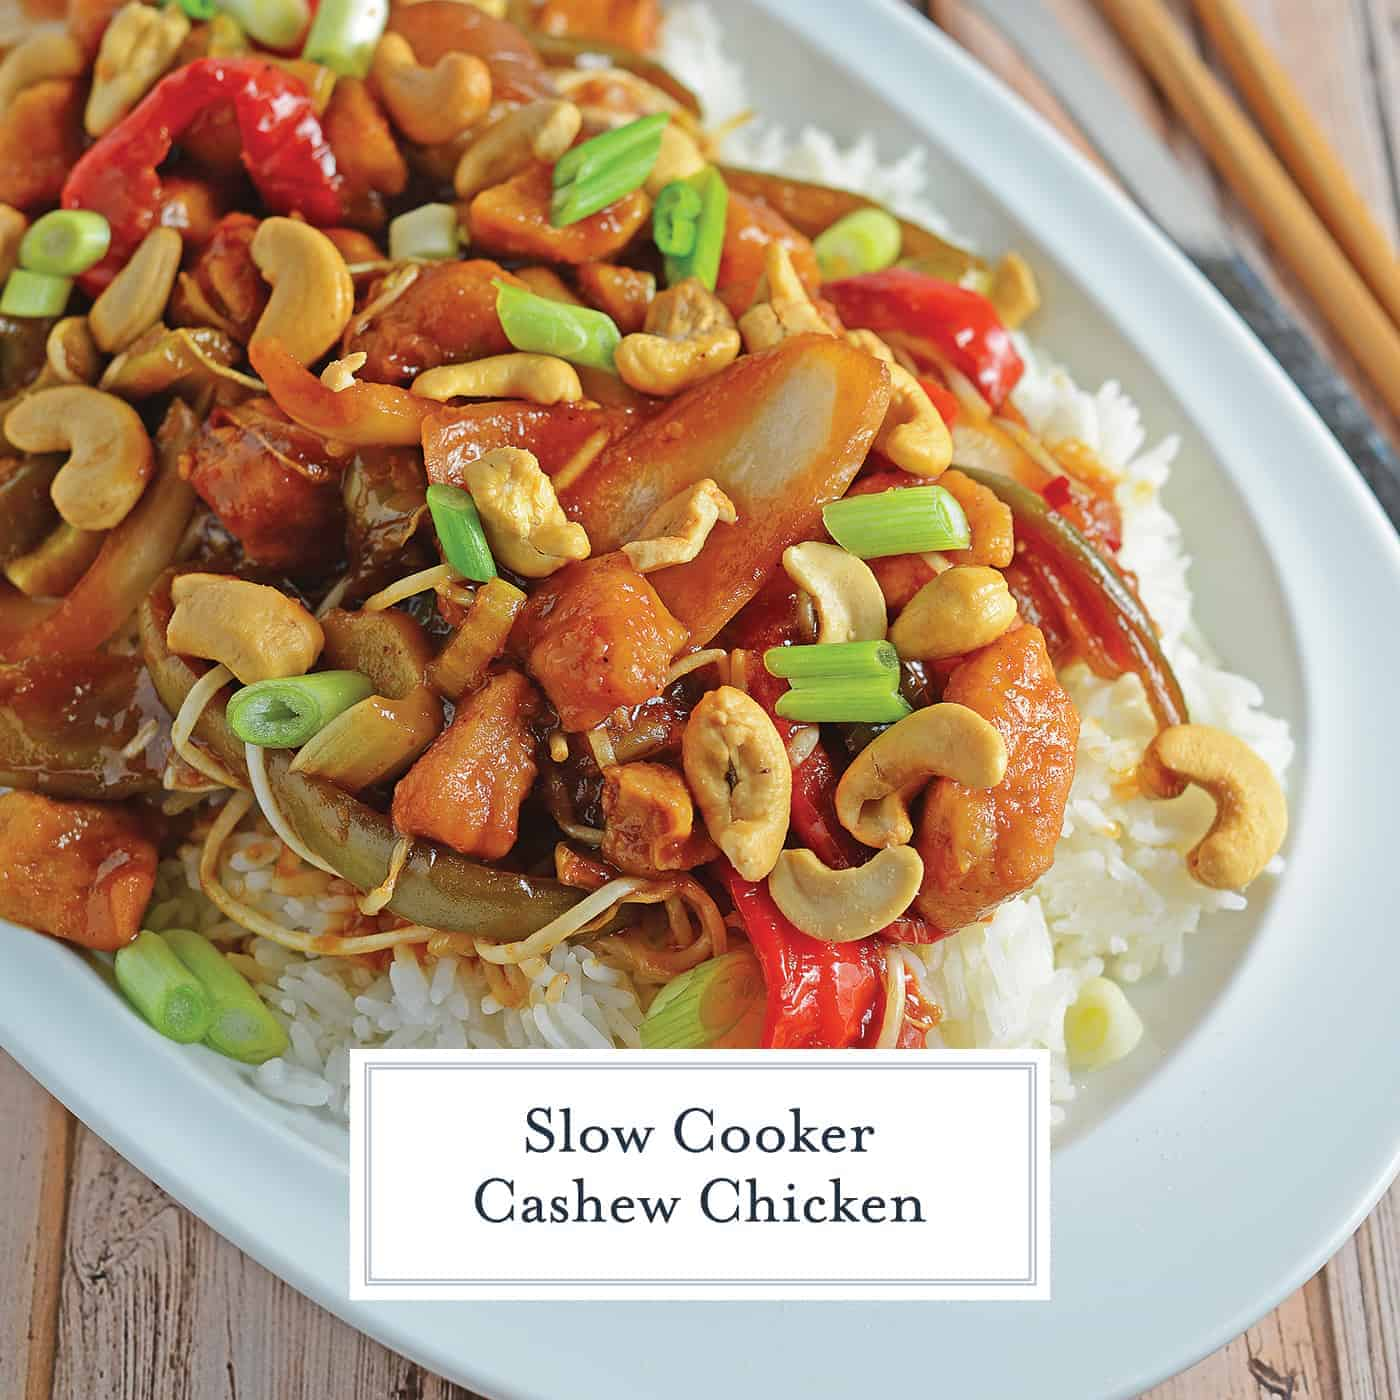 Slow Cooker Cashew Chicken is a favorite chicken crock pot recipe using lightly breaded chicken with a flavorful cashew sauce, celery, bean sprouts, onion and bell pepper! #crockpotchickenrecipes #cashewchicken www.savoryexperiments.com